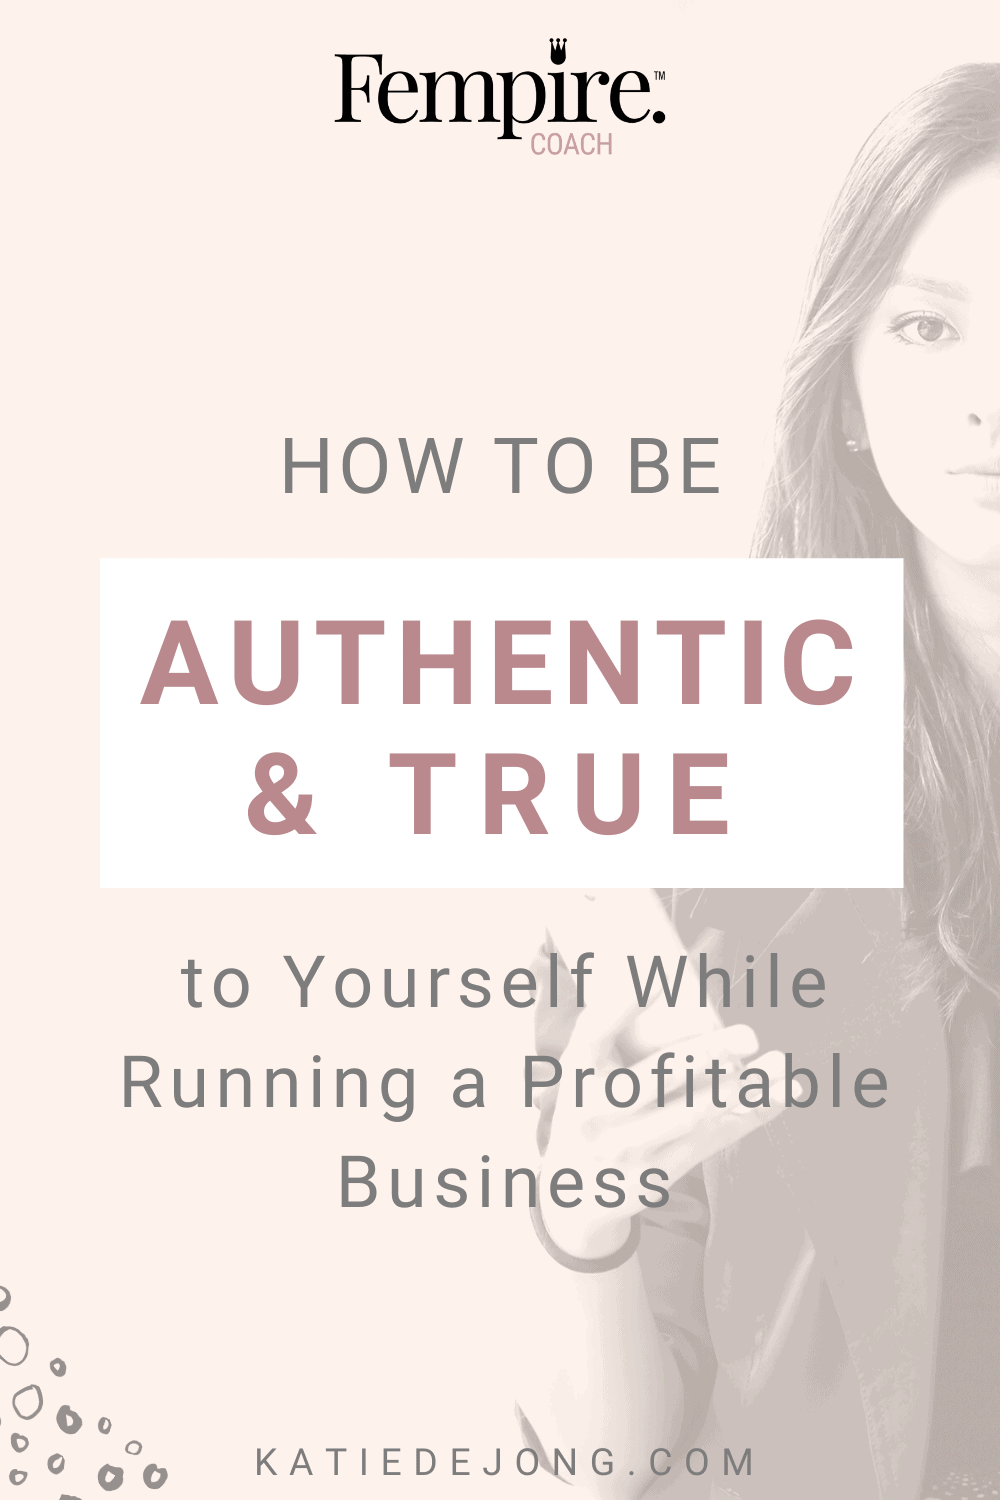 Are you tired of all the marketing hype out there? If so, you're not alone. Consumers are craving more authenticity, depth, and substance in the brands they buy from. Read on to discover how you can increase your profitability by being authentic and true to yourself. #authenticmarketing #authenticity #authenticbusiness #smallbusiness #businesscoach #fempire #fempirecoach